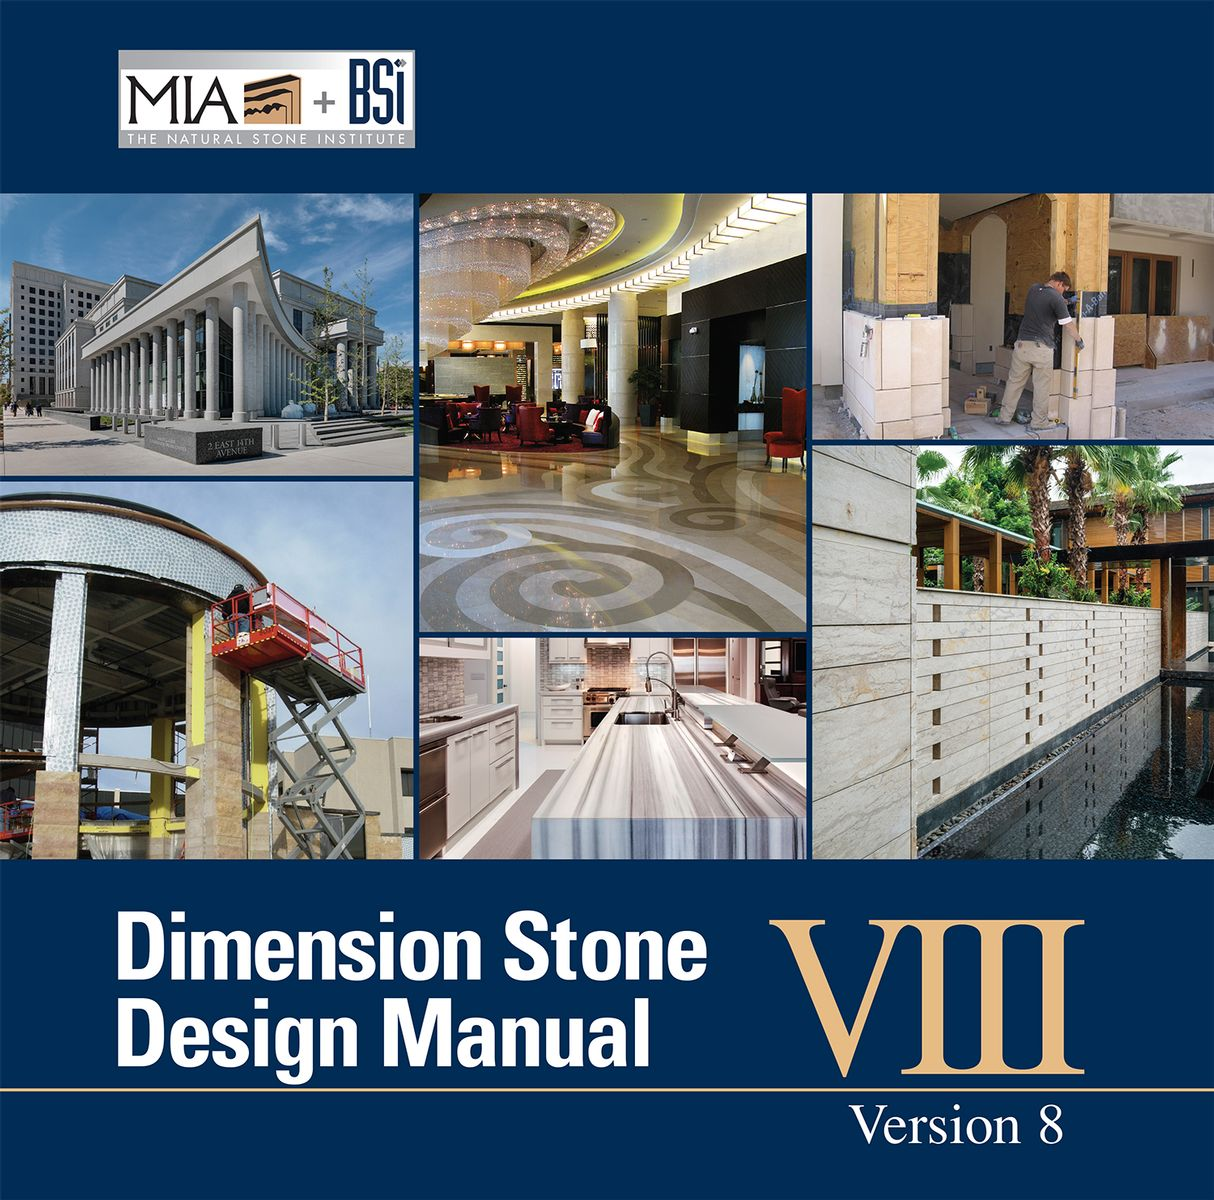 natural stone institute mia bsi releases dimension stone design rh naturalstoneinstitute org dimension stone design manual version viii (may 2016) dimension stone design manual version 7.2